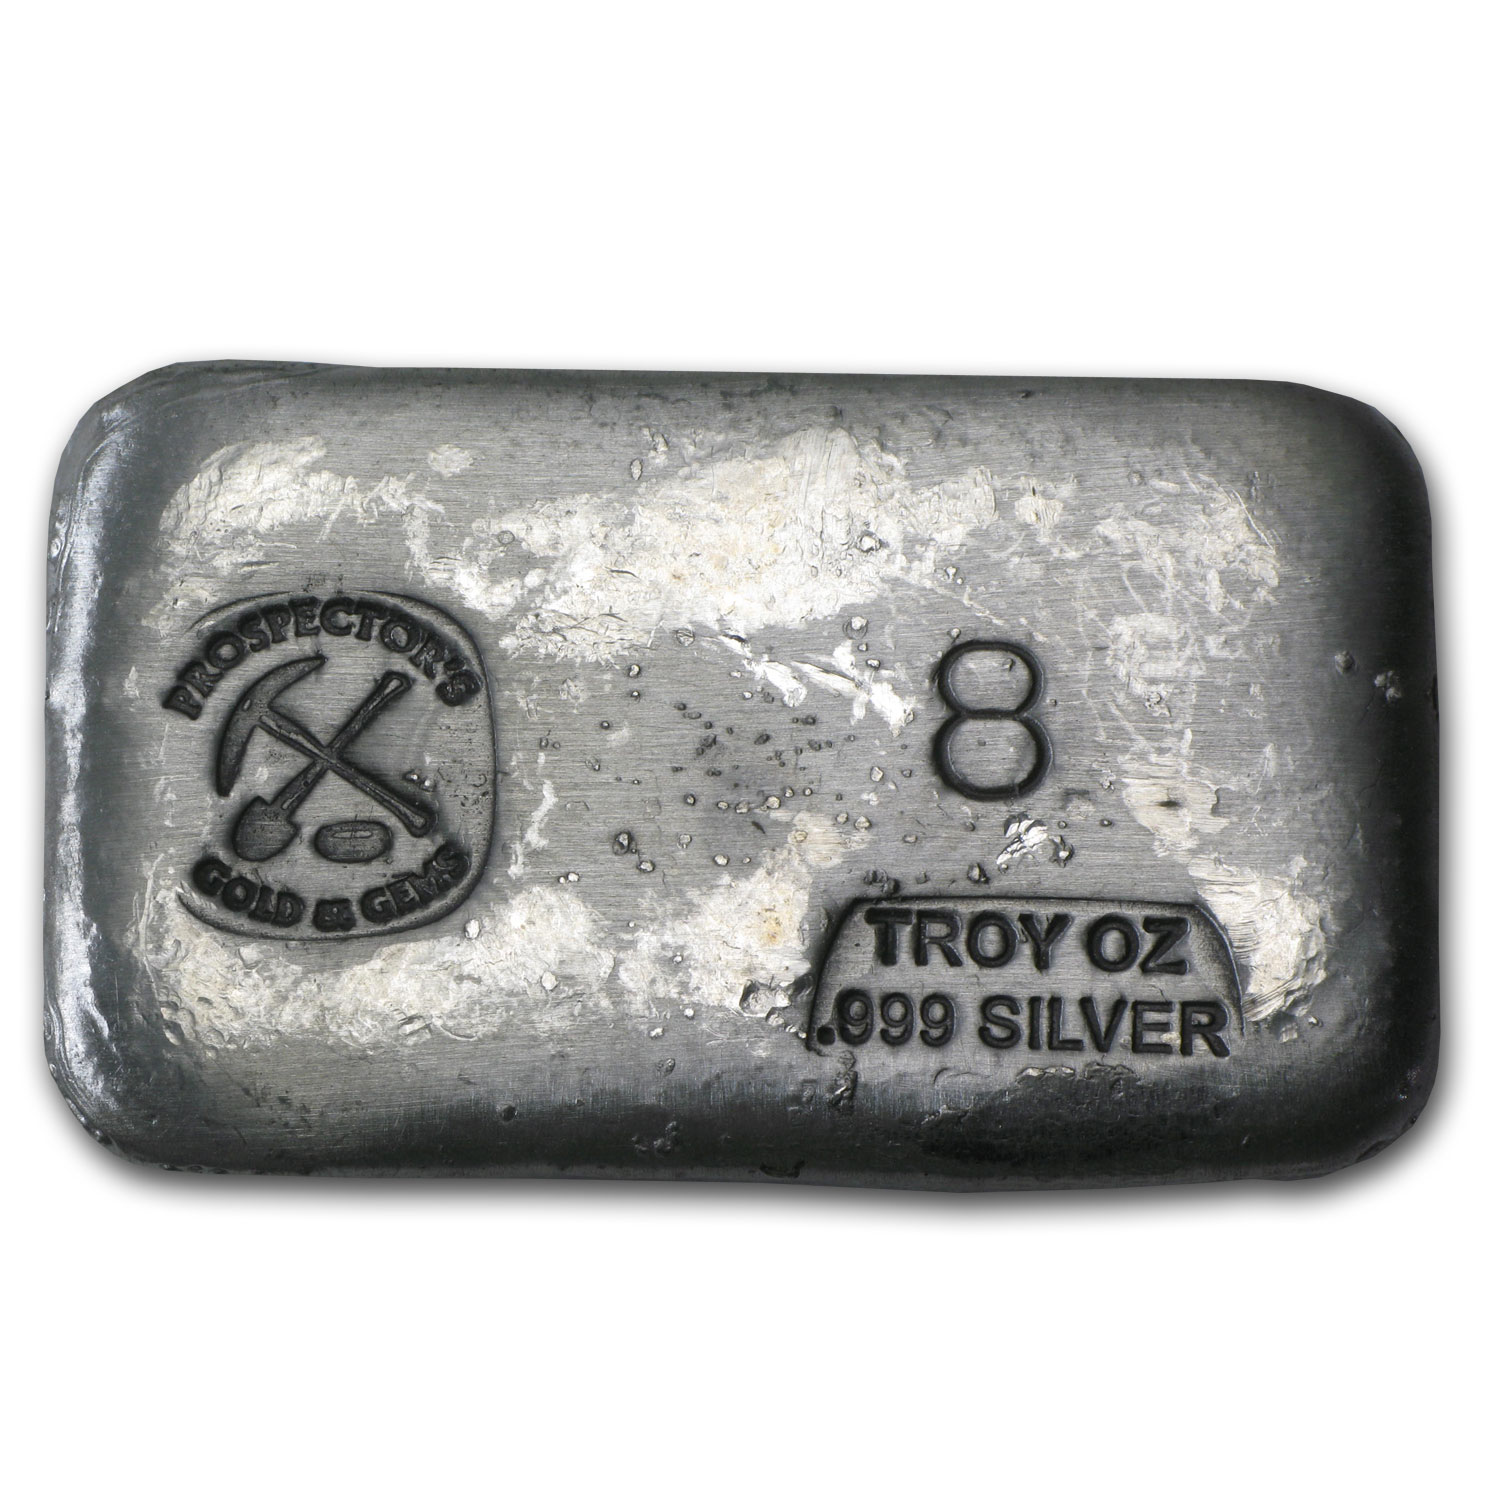 8 oz Silver Bar - Prospector's Gold & Gems